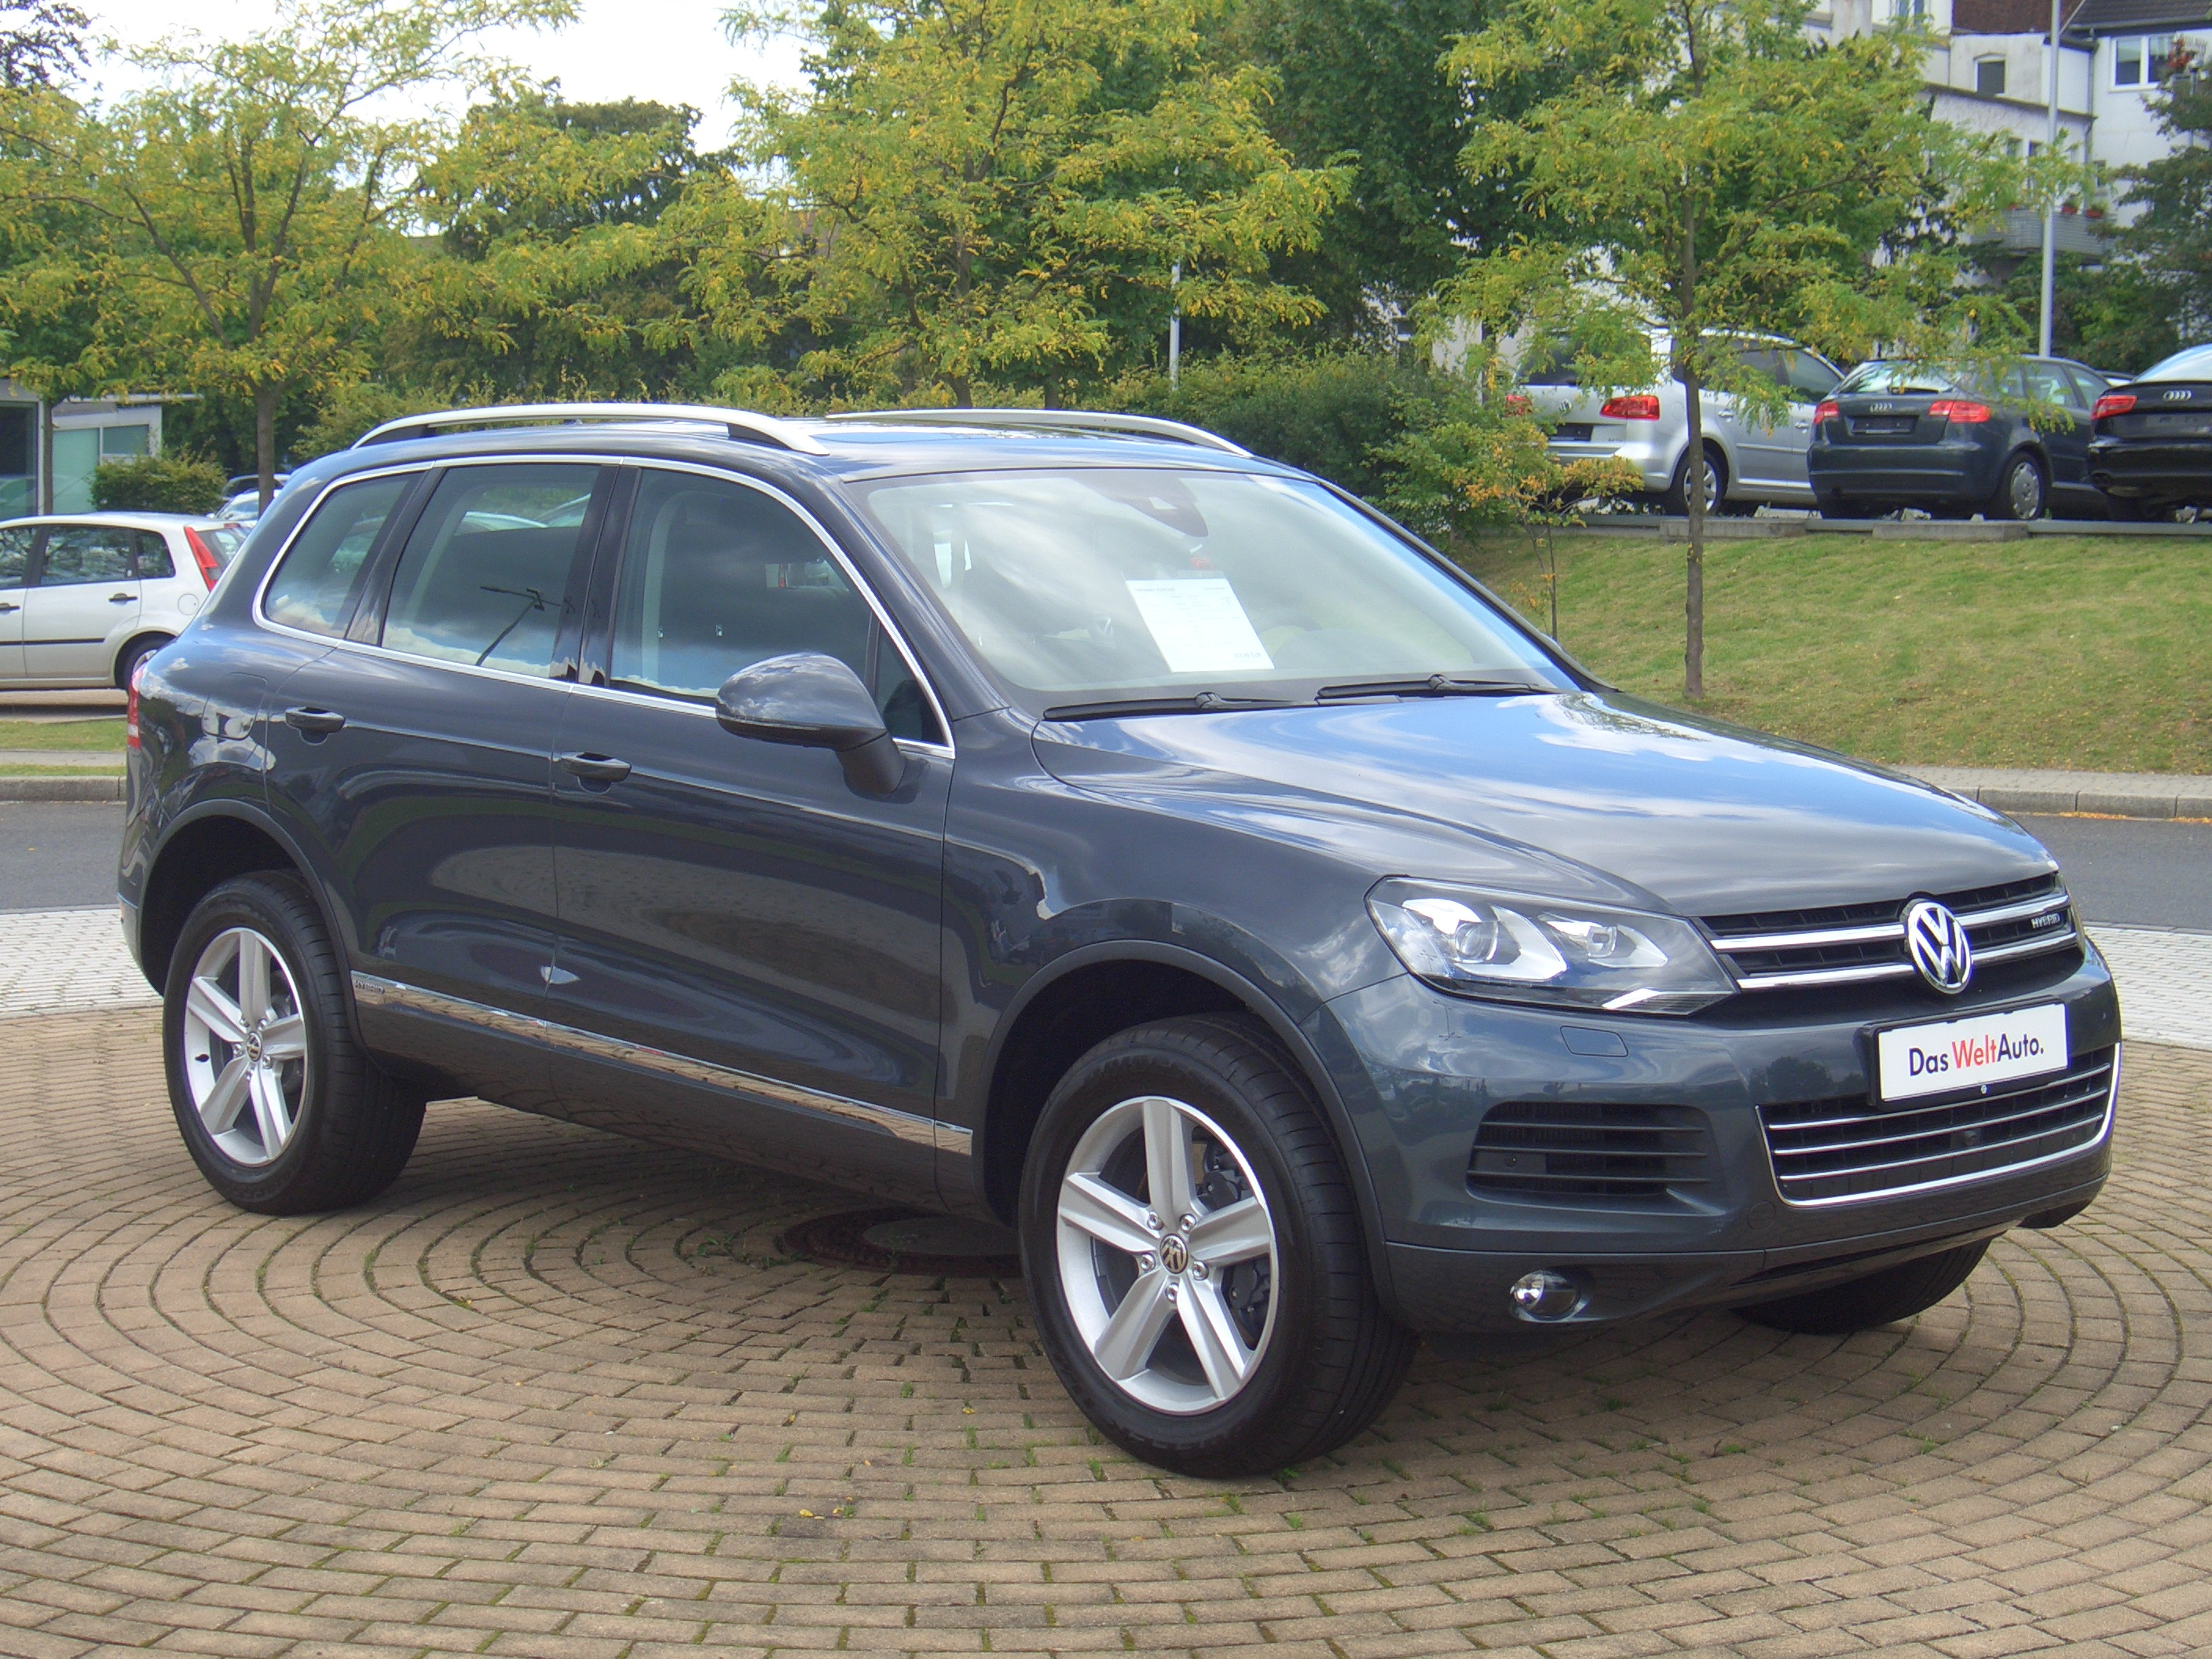 File Volkswagen Touareg Hybrid 4motion C2 From 2010 Frontright 2017 08 07 A Jpg